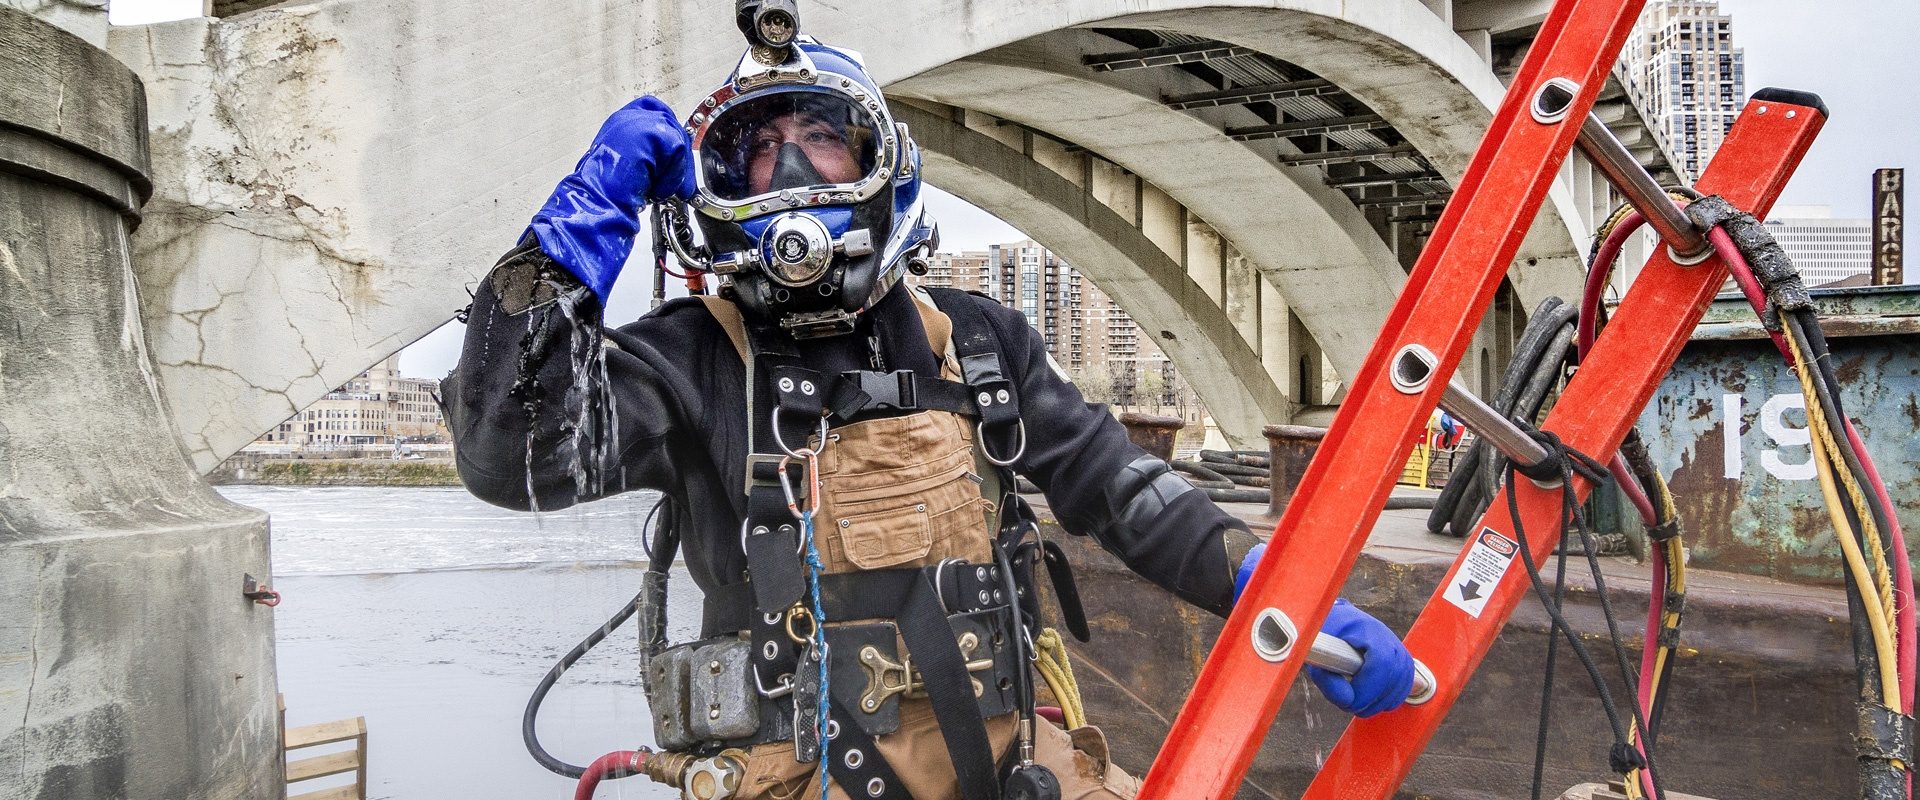 commercial diving, underwater construction, underwater inspections, hard hat diving, industrial diving, brennan, adci divers, dive contractors